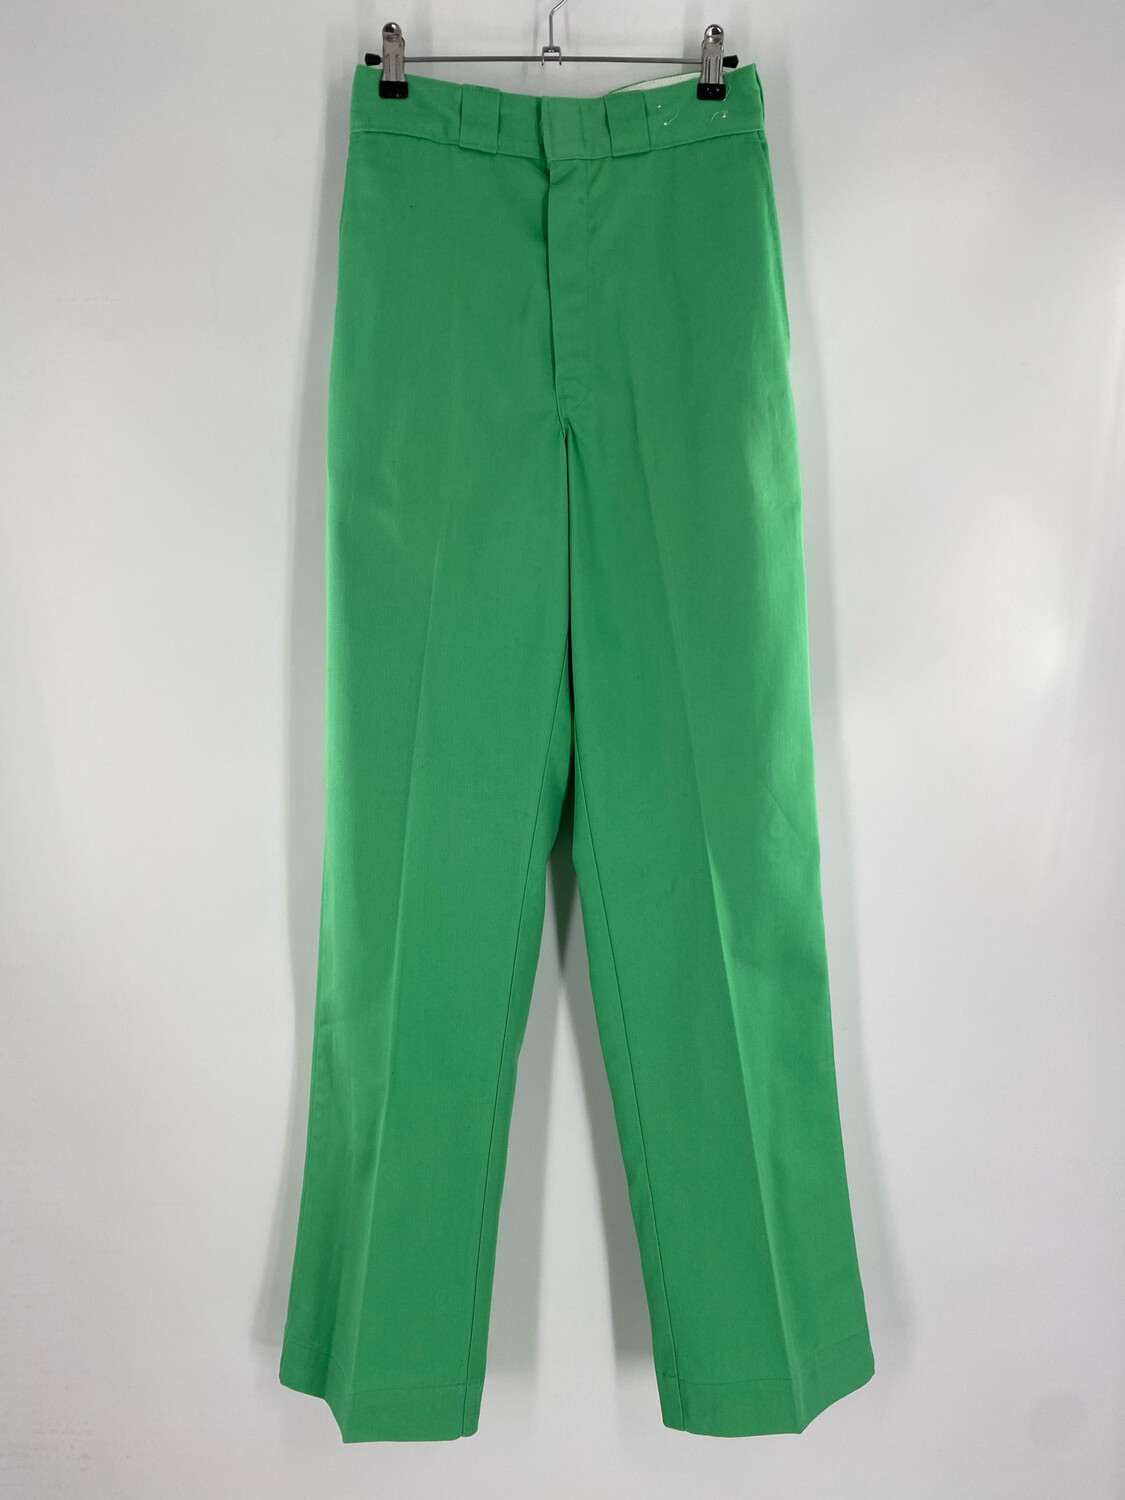 Dickies Green Vintage Trouser Pant Size S